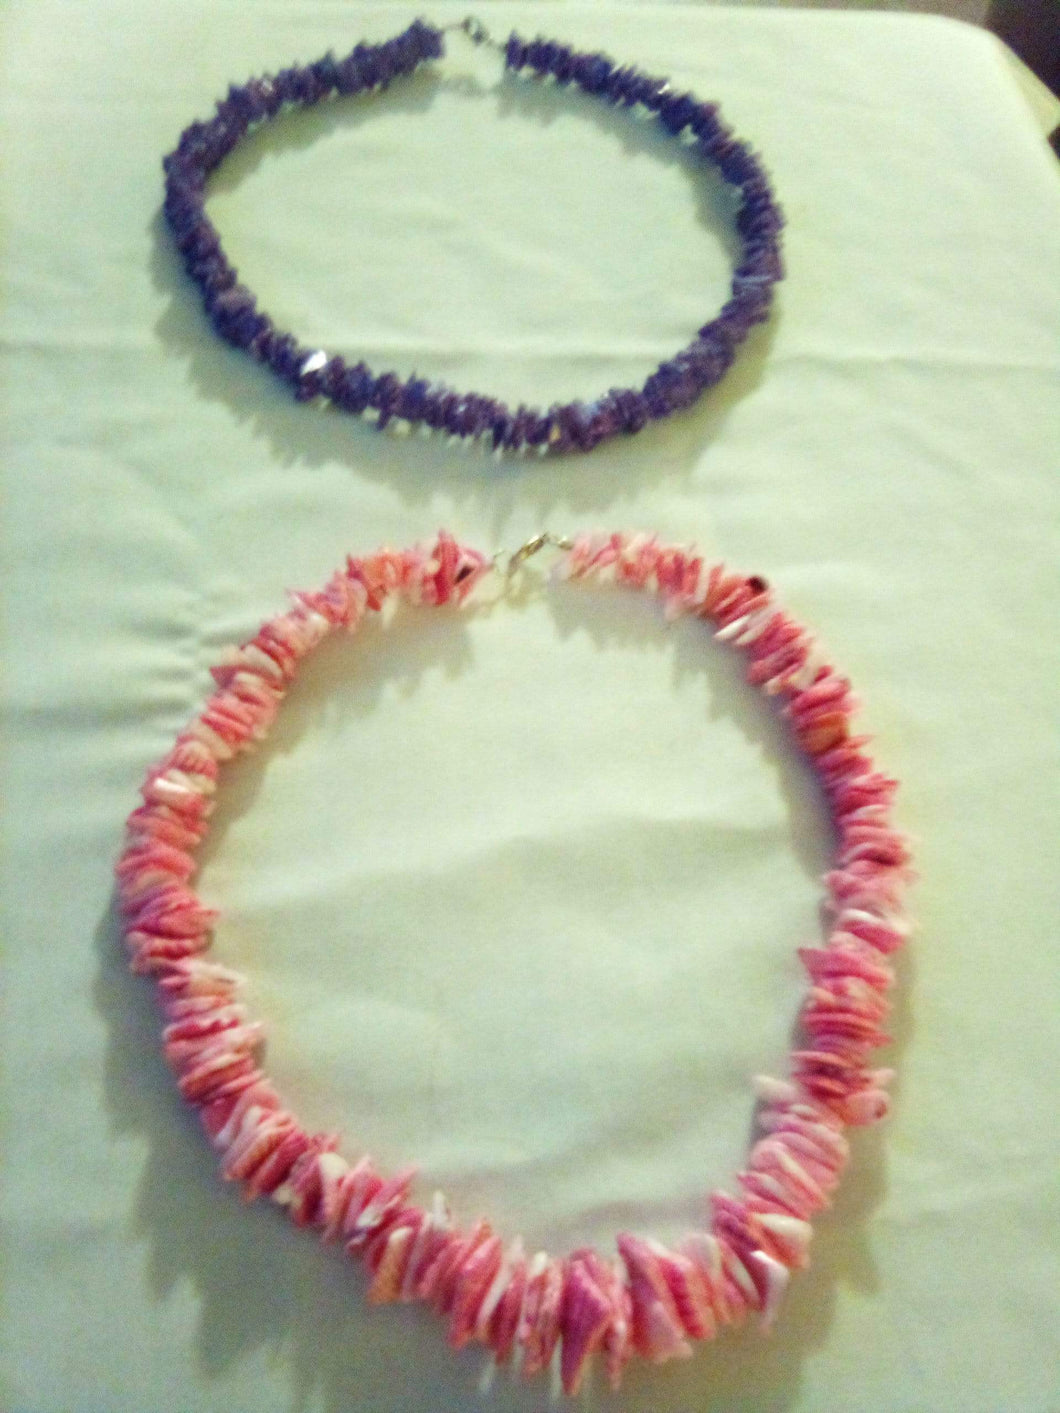 Two large pucca shell necklaces - B&P'sringsnthings